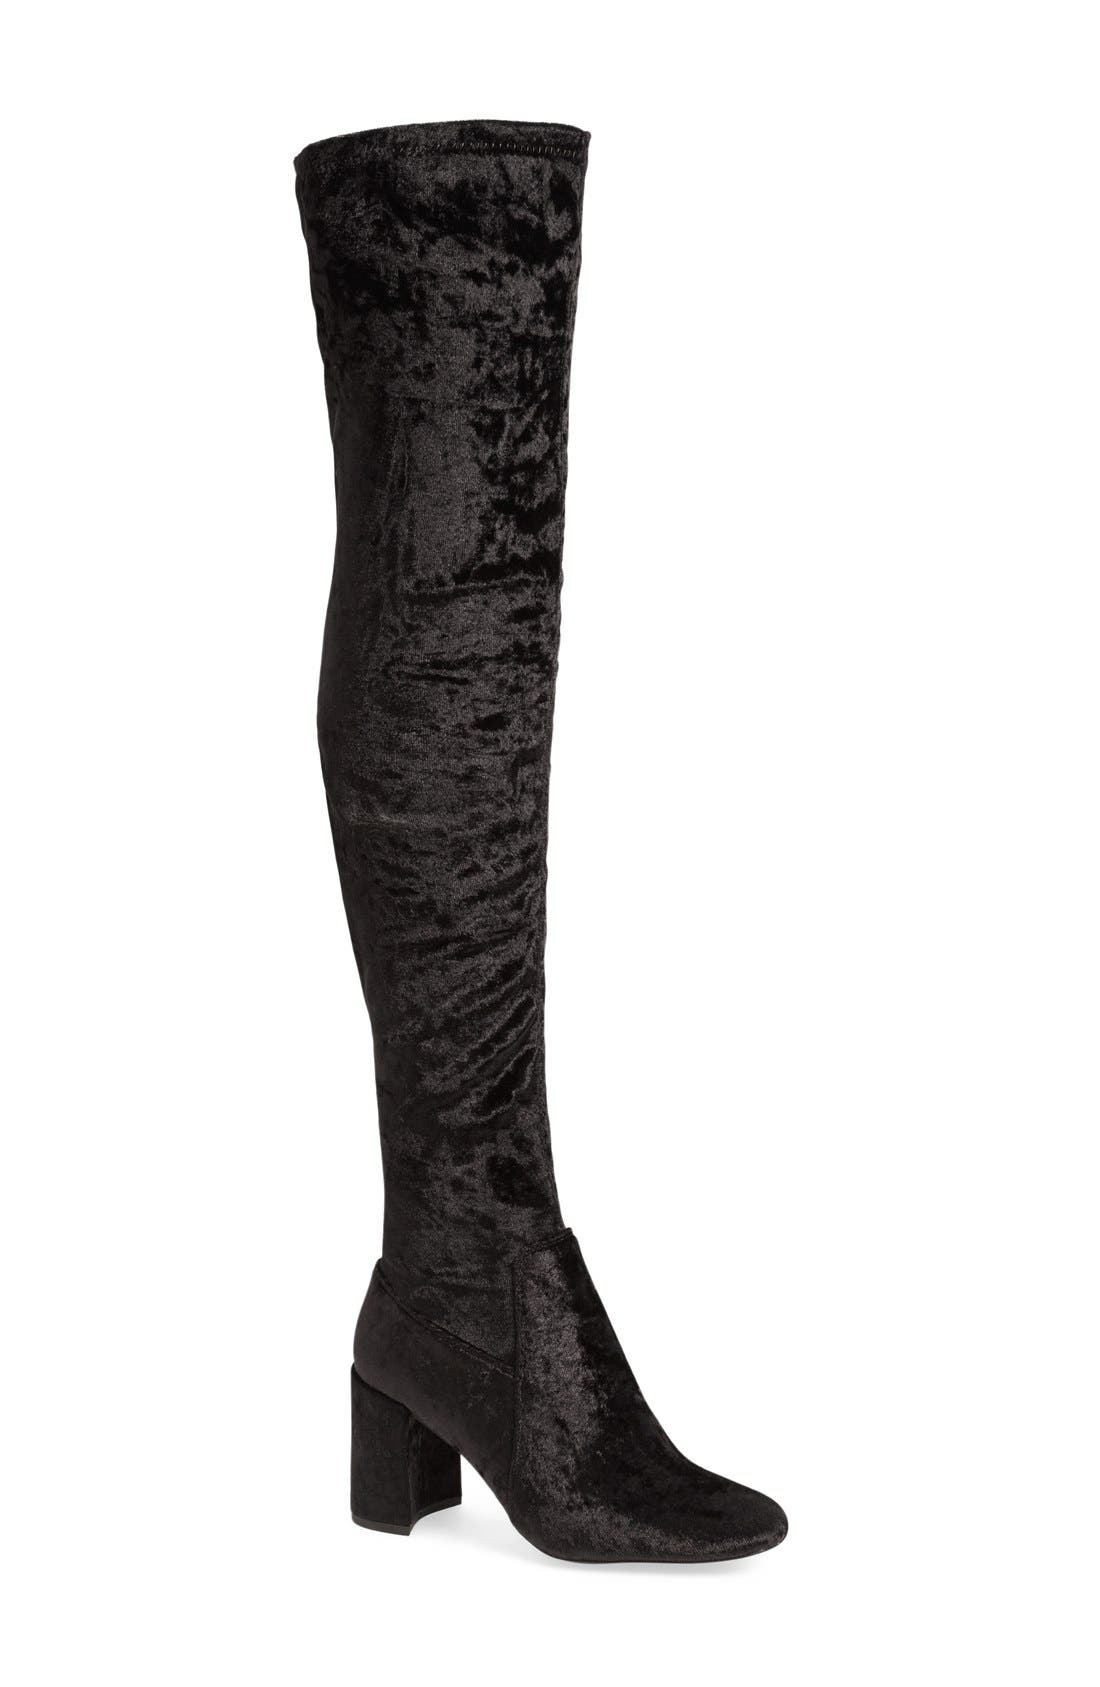 JEFFREY CAMPBELL 'Cienega' Over the Knee Boot